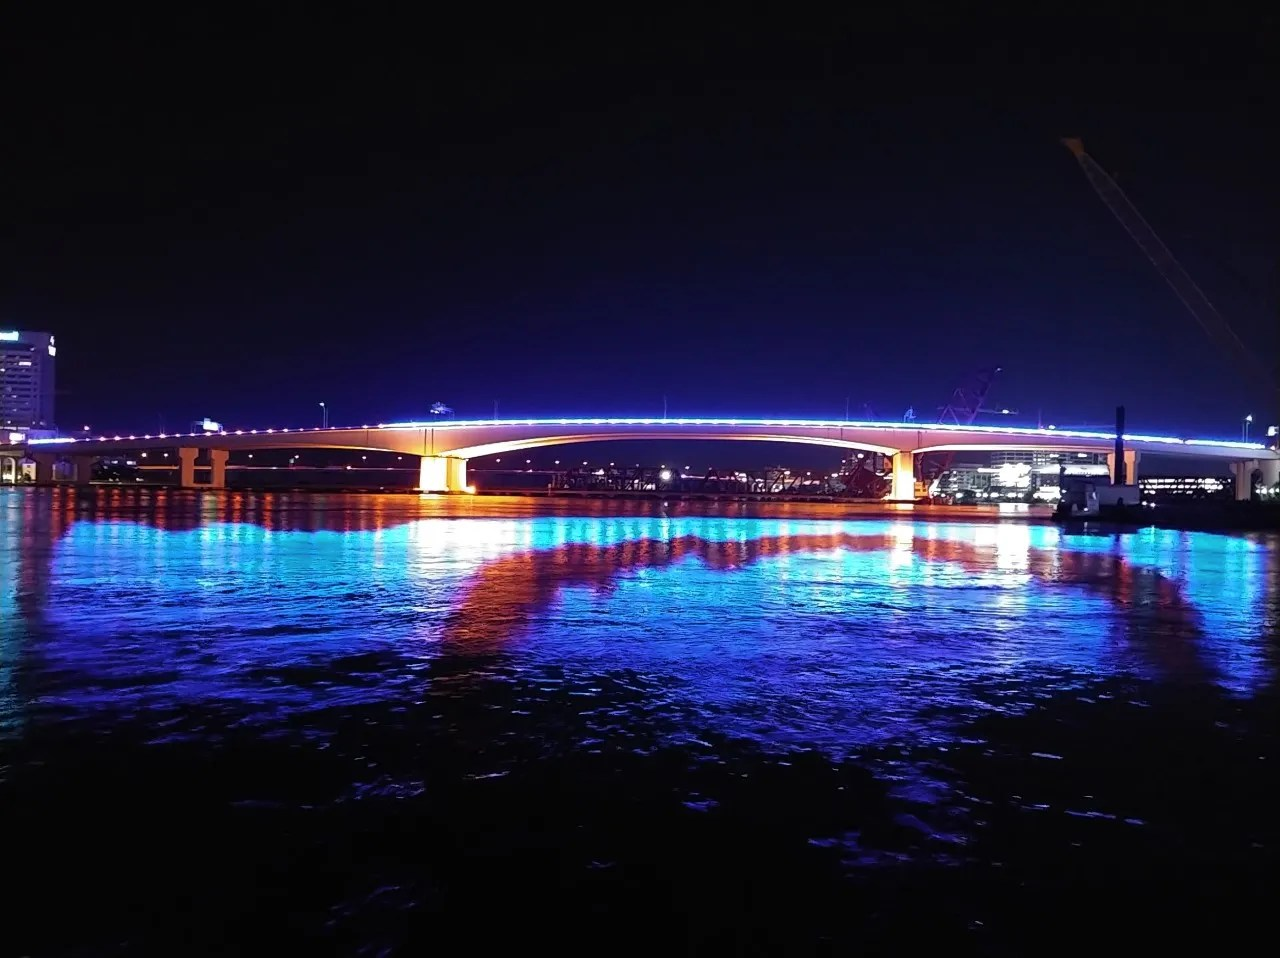 Acosta Bridge, with blue lights, in downtown Jacksonville, Florida on Tuesday, June 8, 2021.